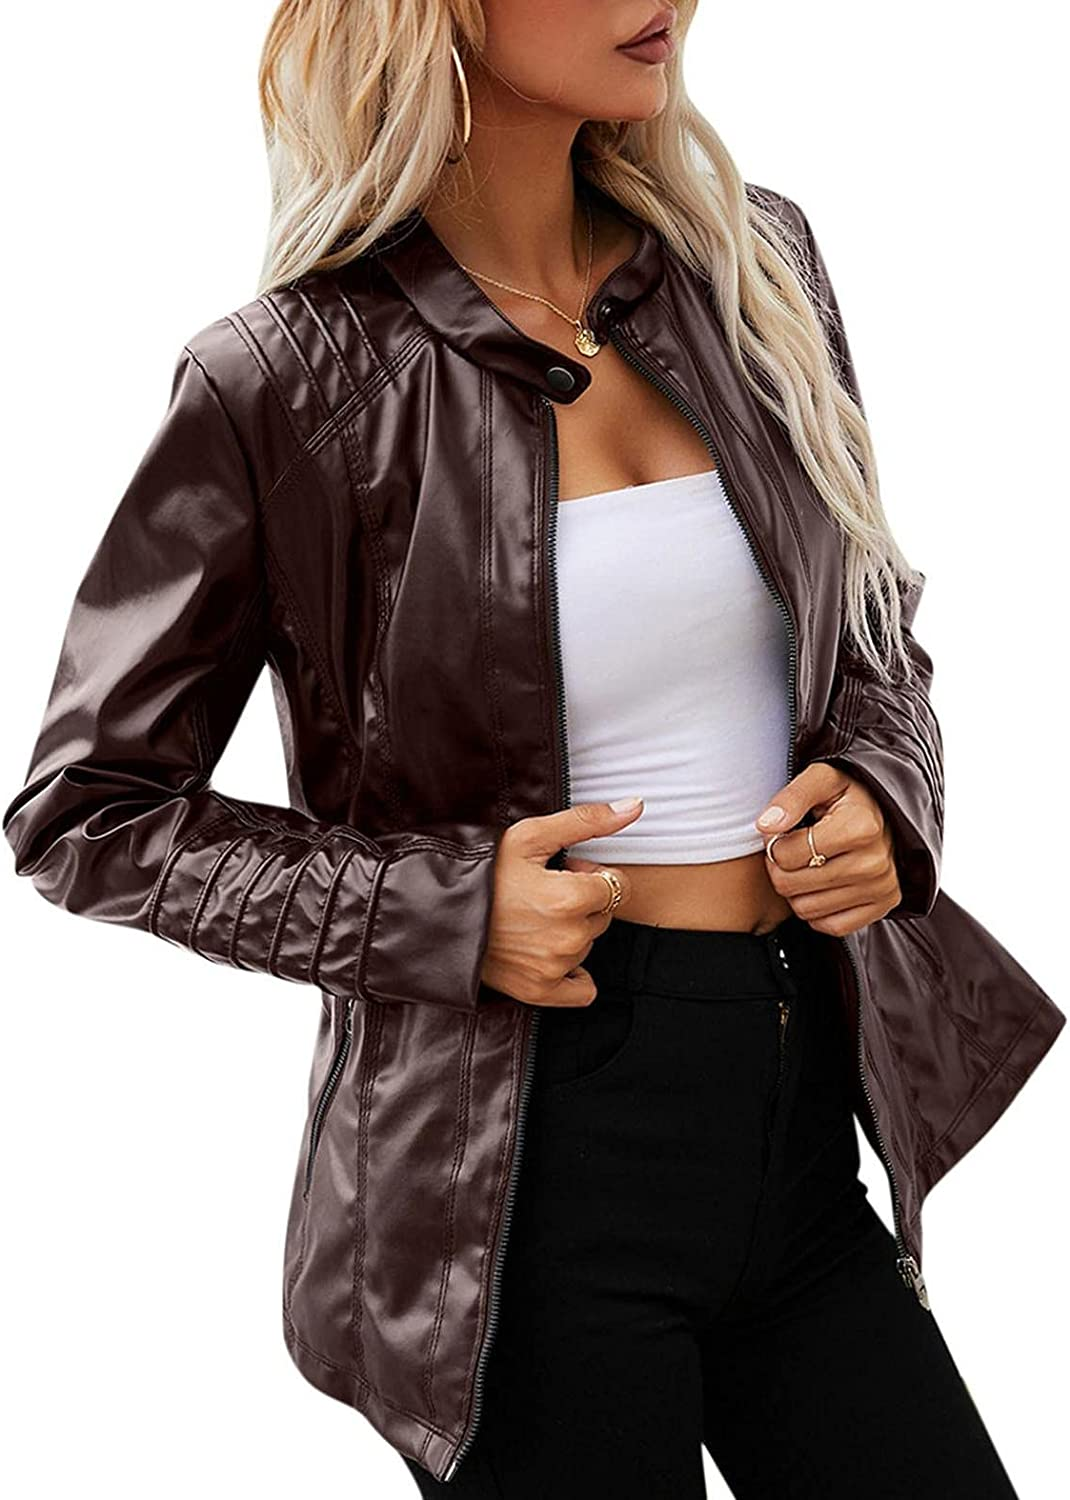 MAICC Women's Faux Leather Jackets Zip Up Basic Motorcycle Short PU Moto Biker Outwear Fitted Slim Coat with Pocket 02